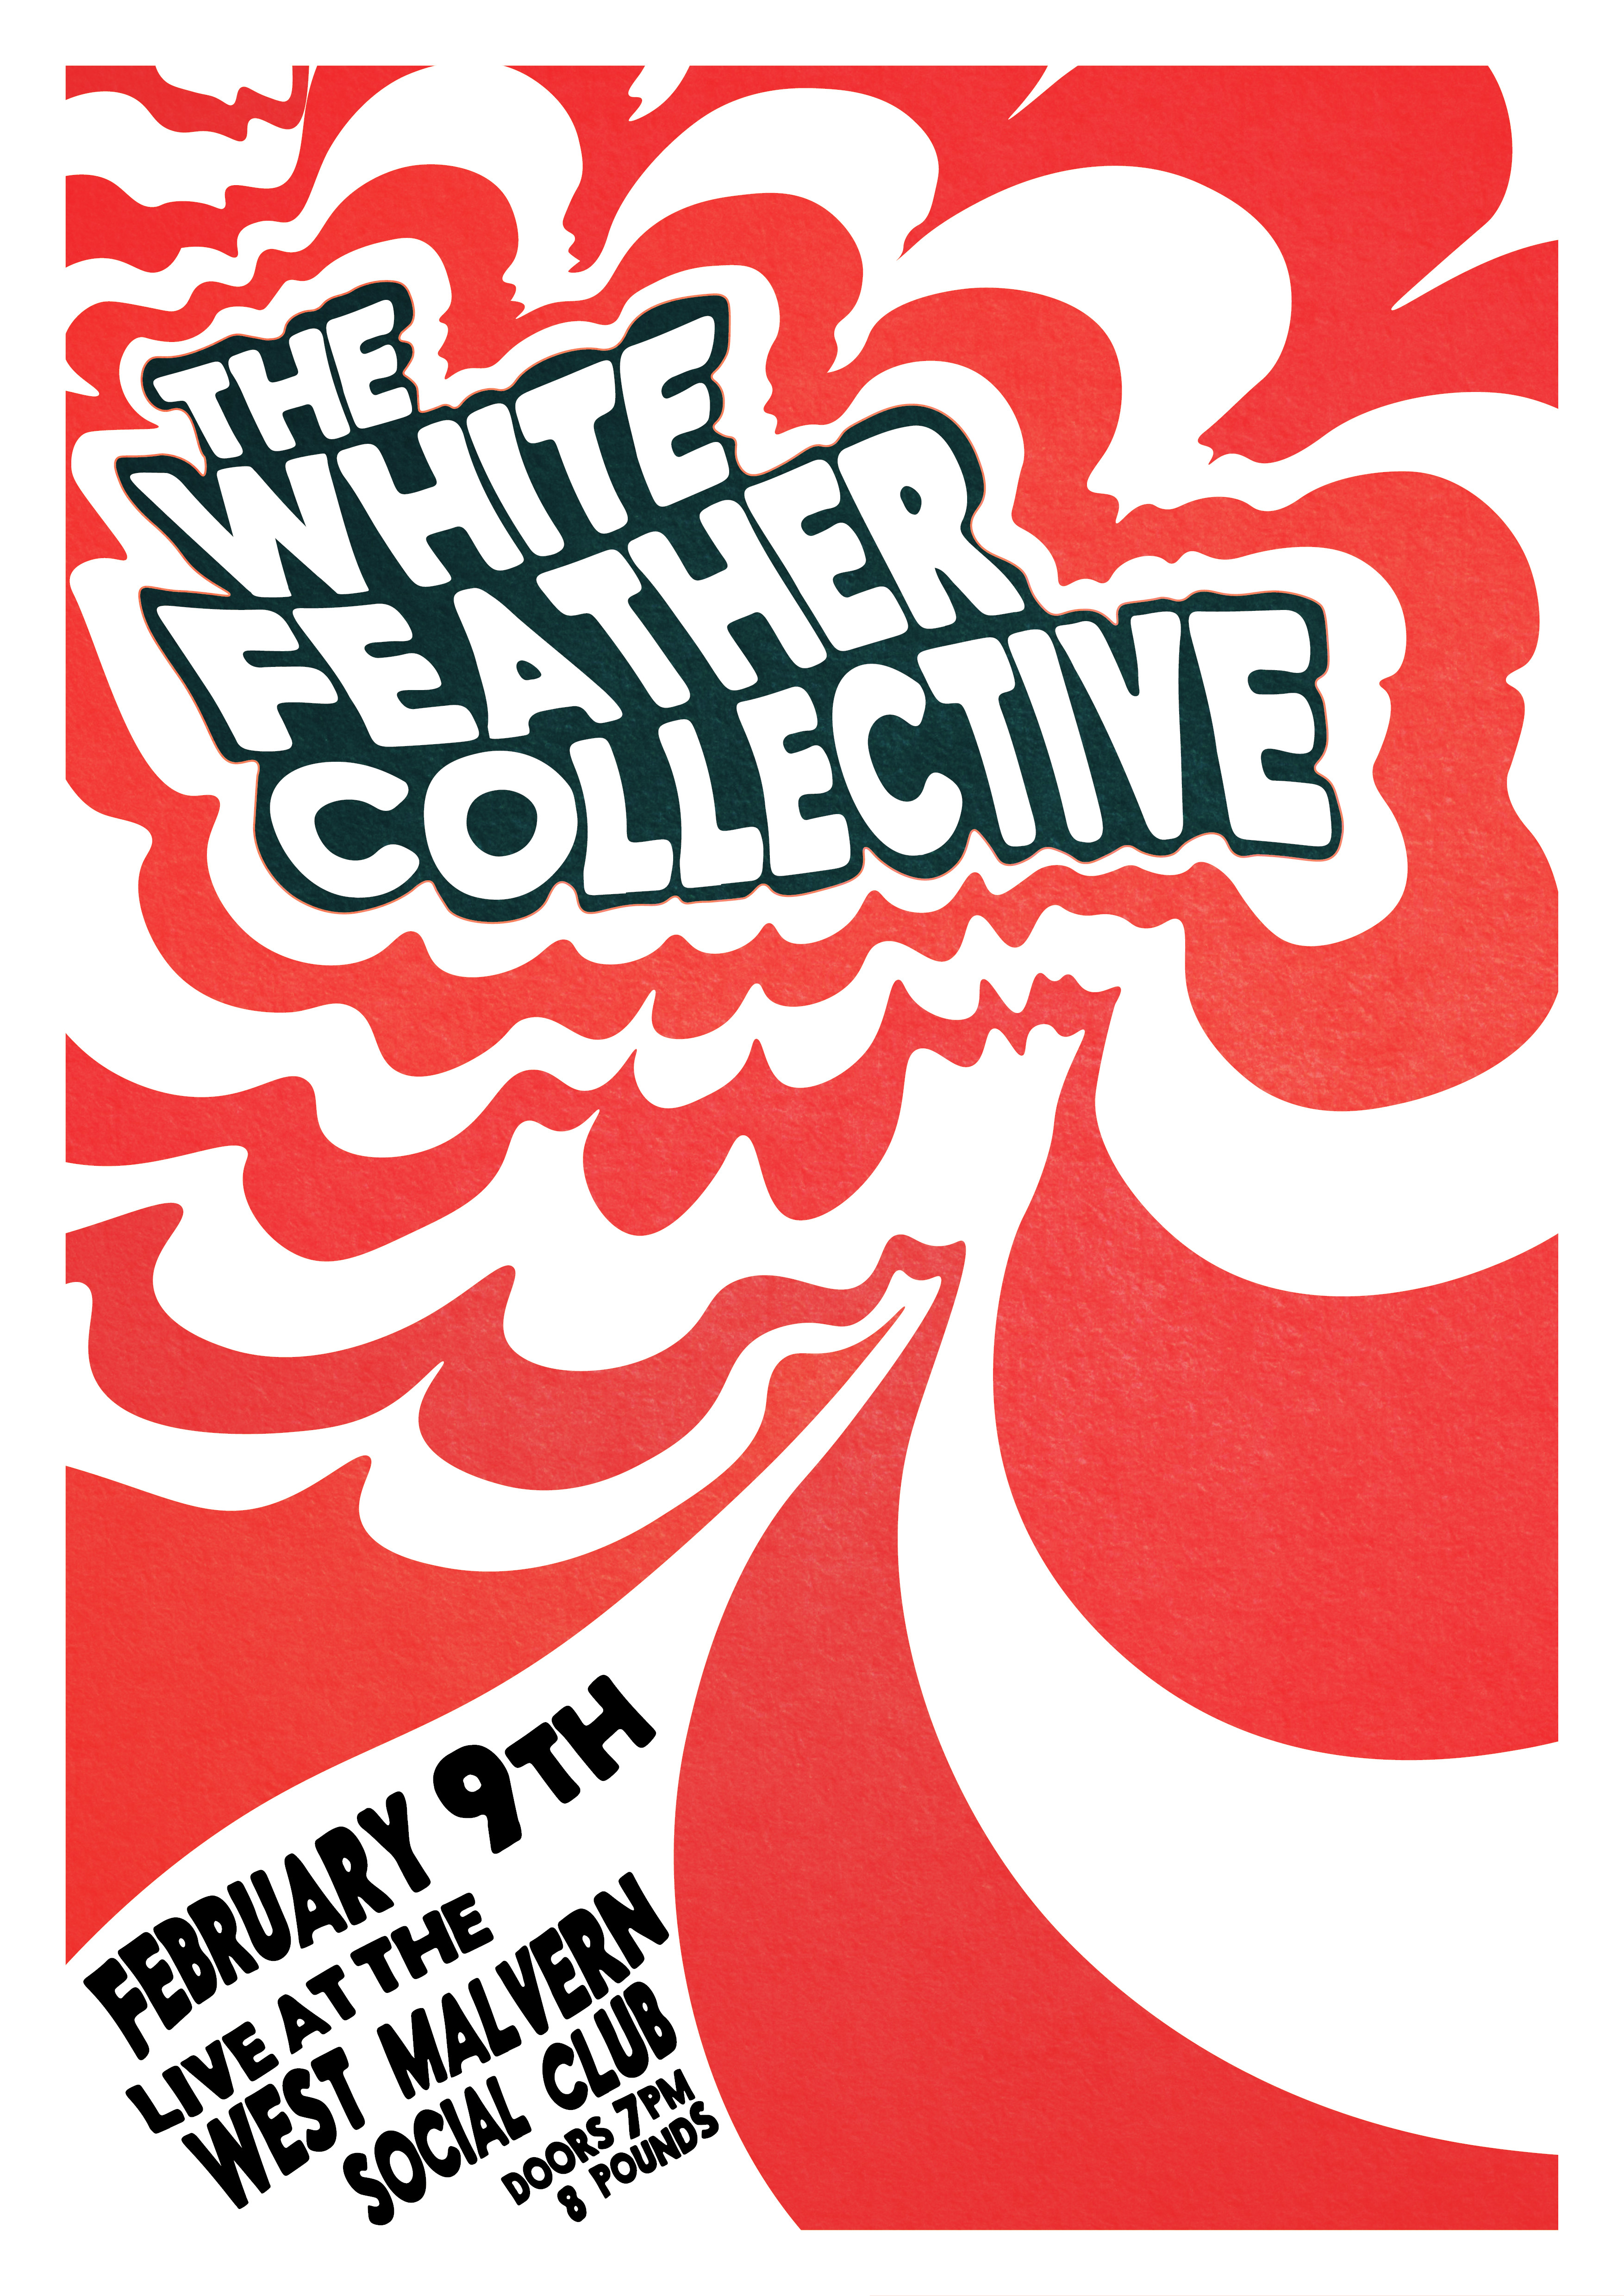 White Feather Collective